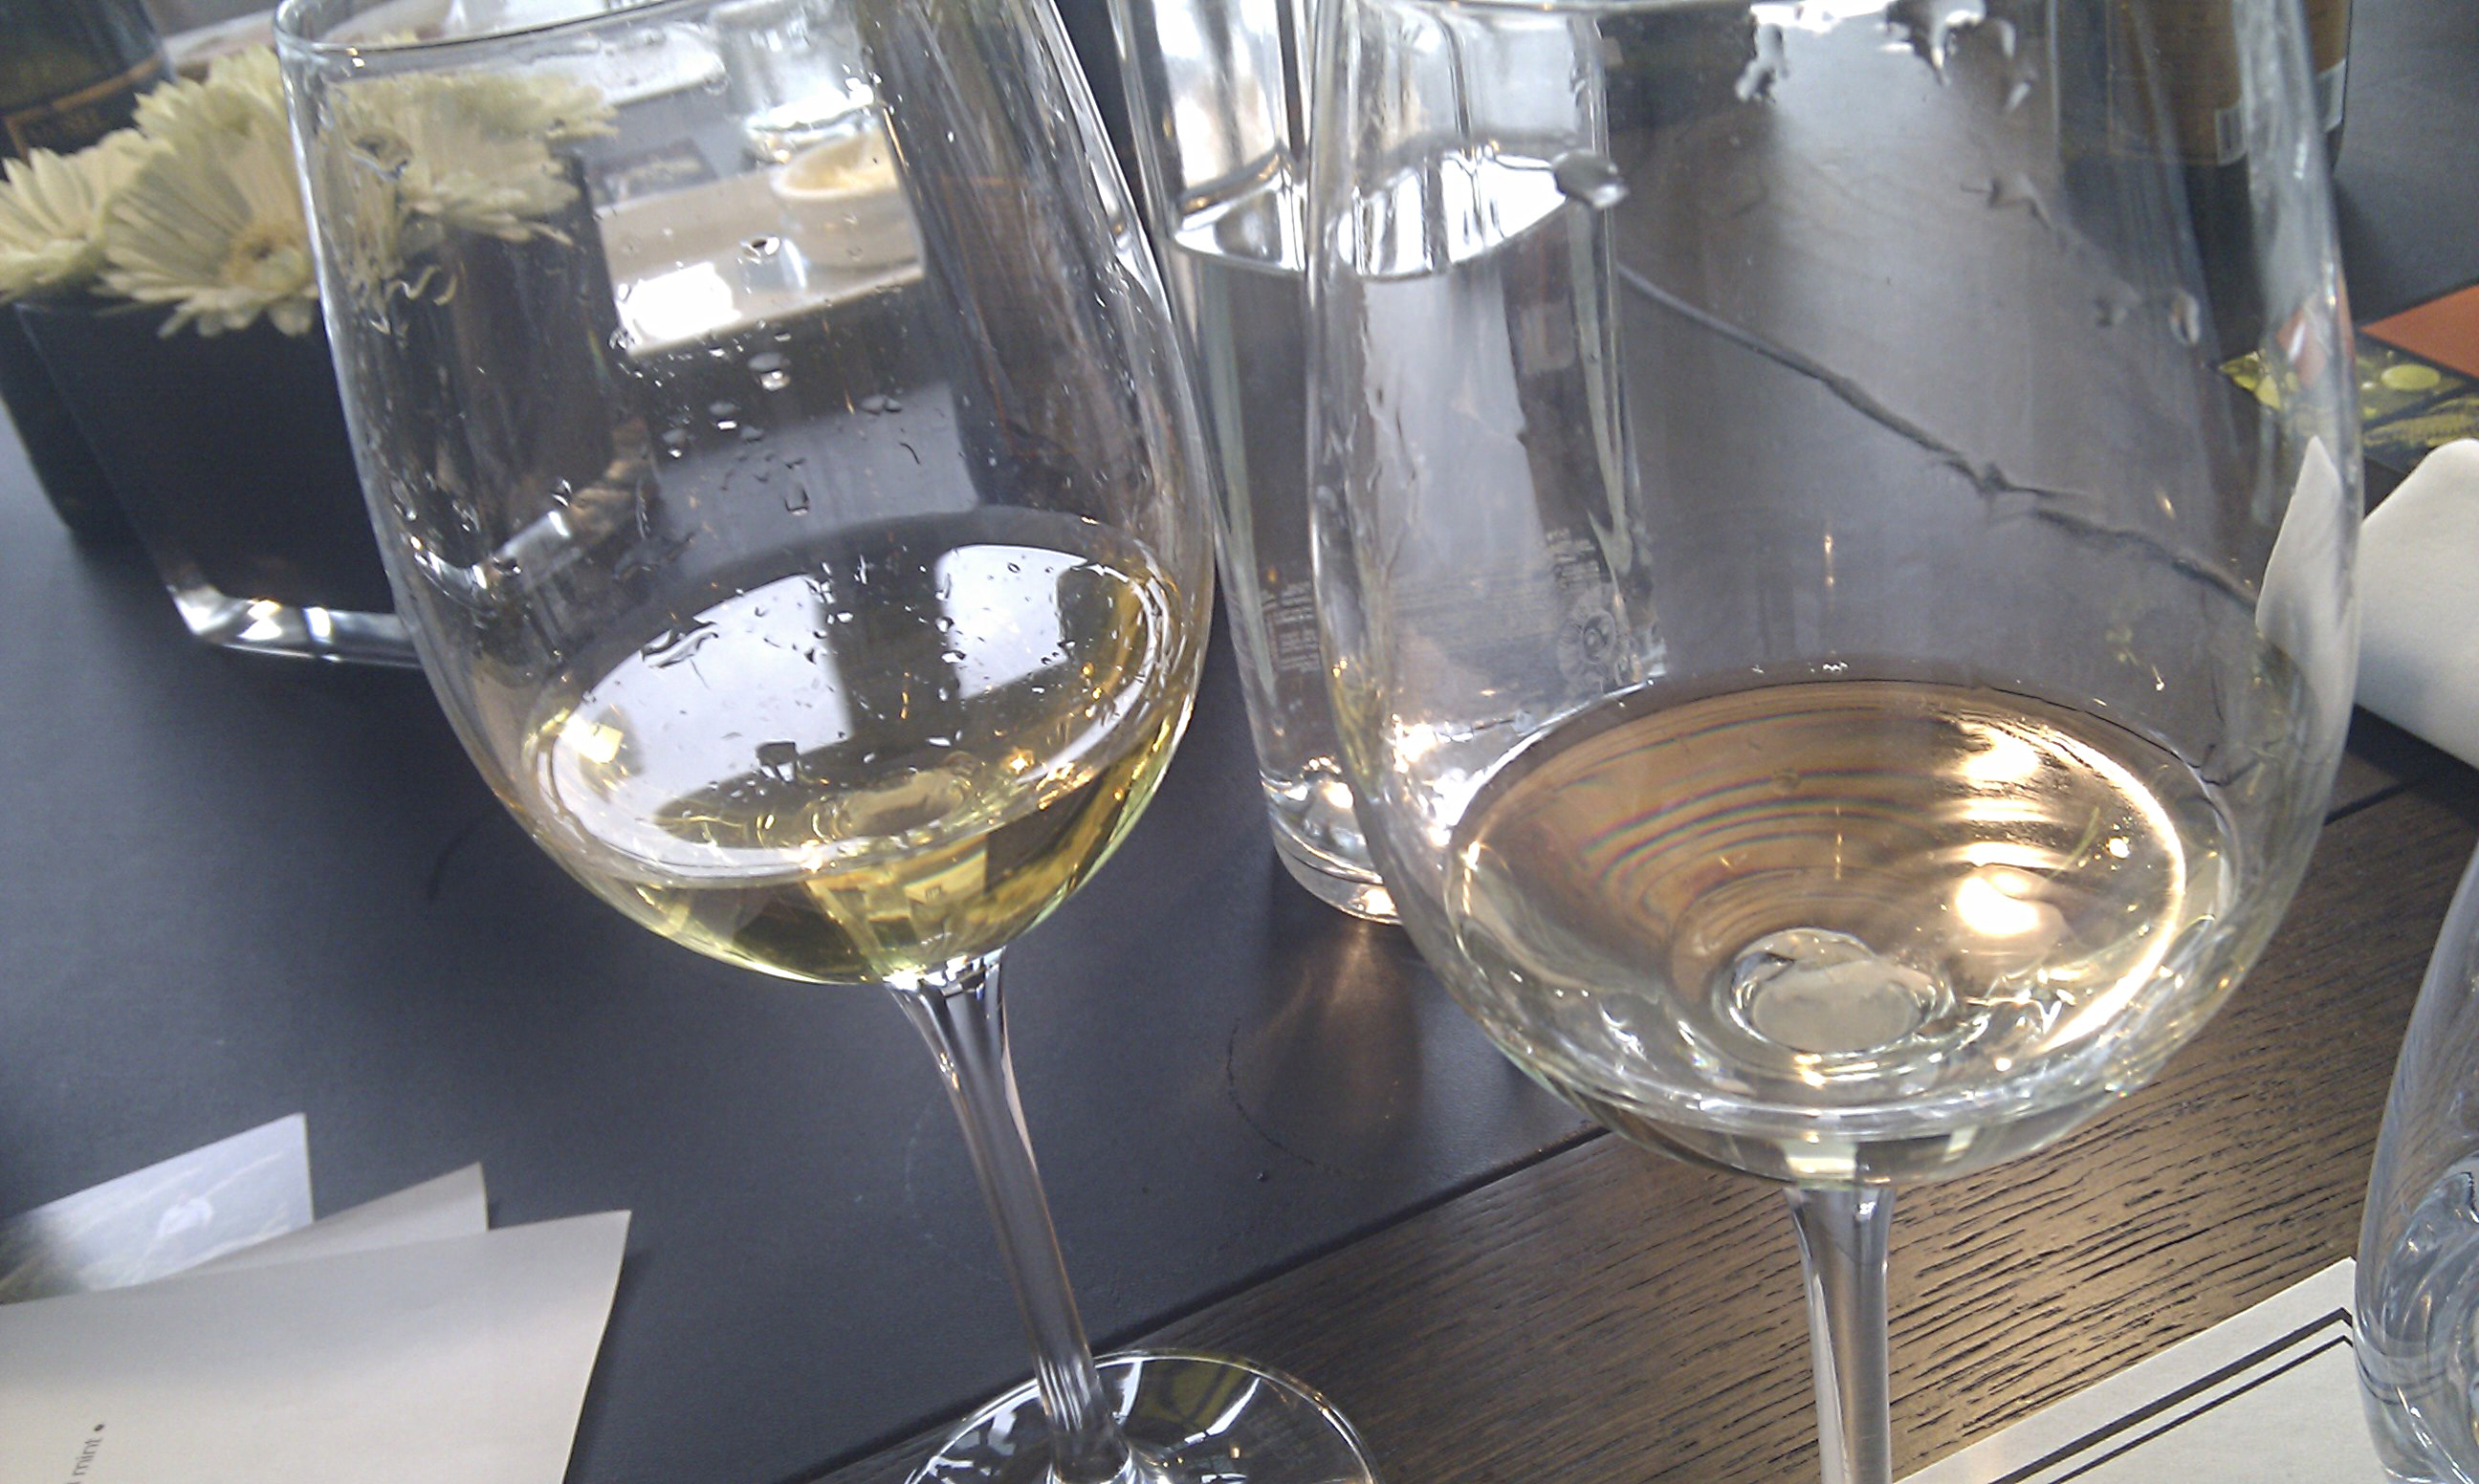 colour difference: rich 1990 Auslese vs light Urban Riesling